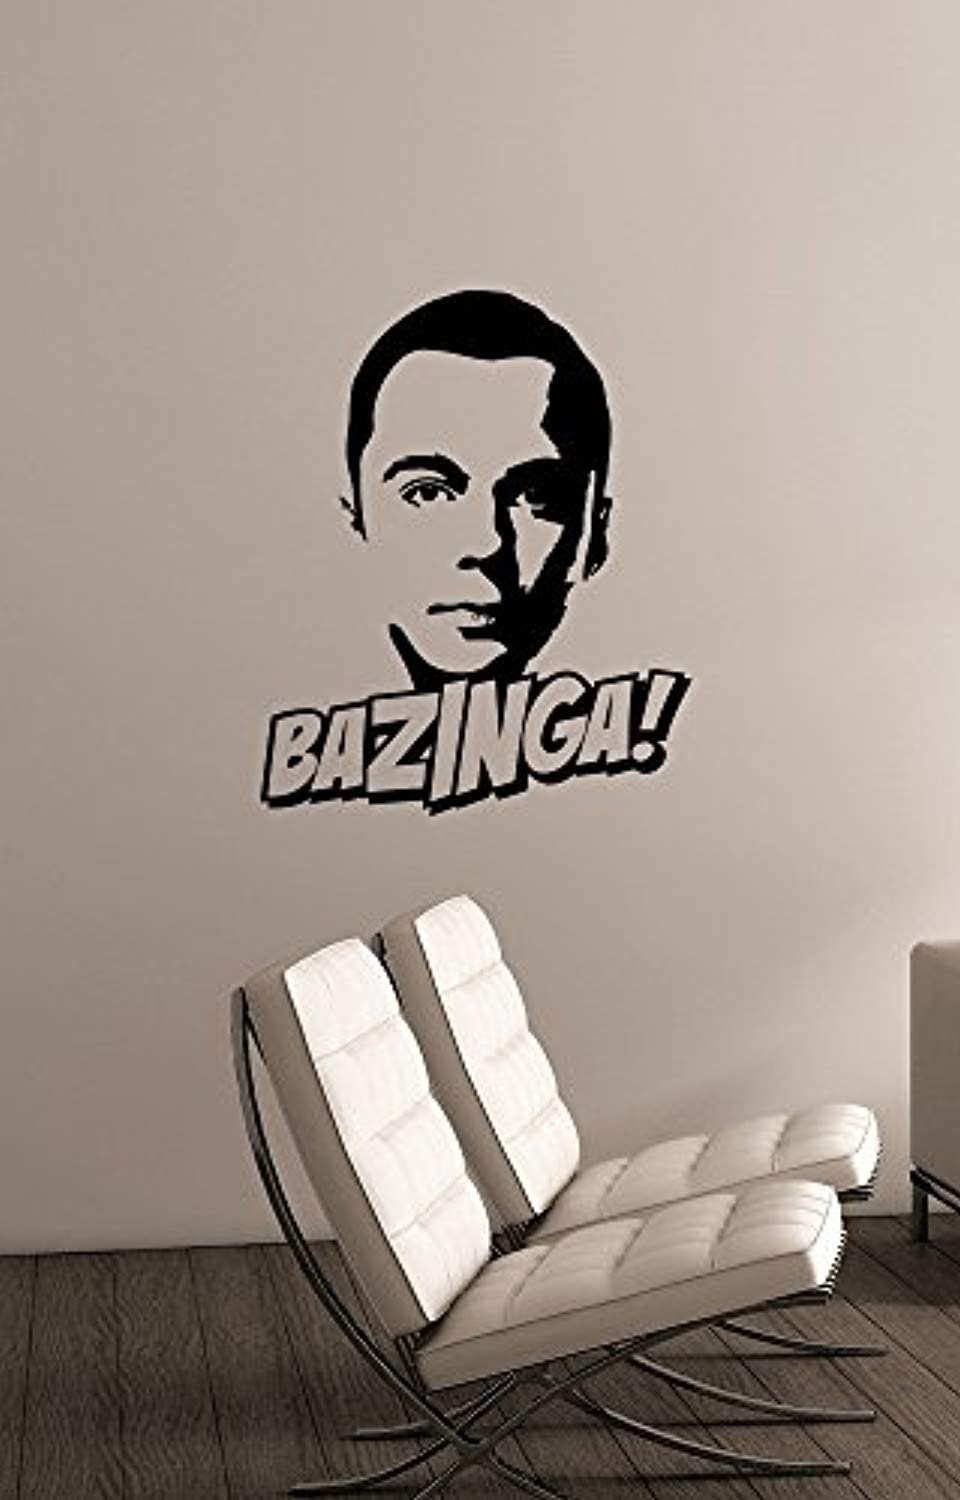 Sheldon Cooper Quote Wall Art Bazinga The Big Bang Theory Decal Vinyl Lettering Humorous Saying Sticker TV Show Decorations for Home Room Bedroom Comic Decor bt3